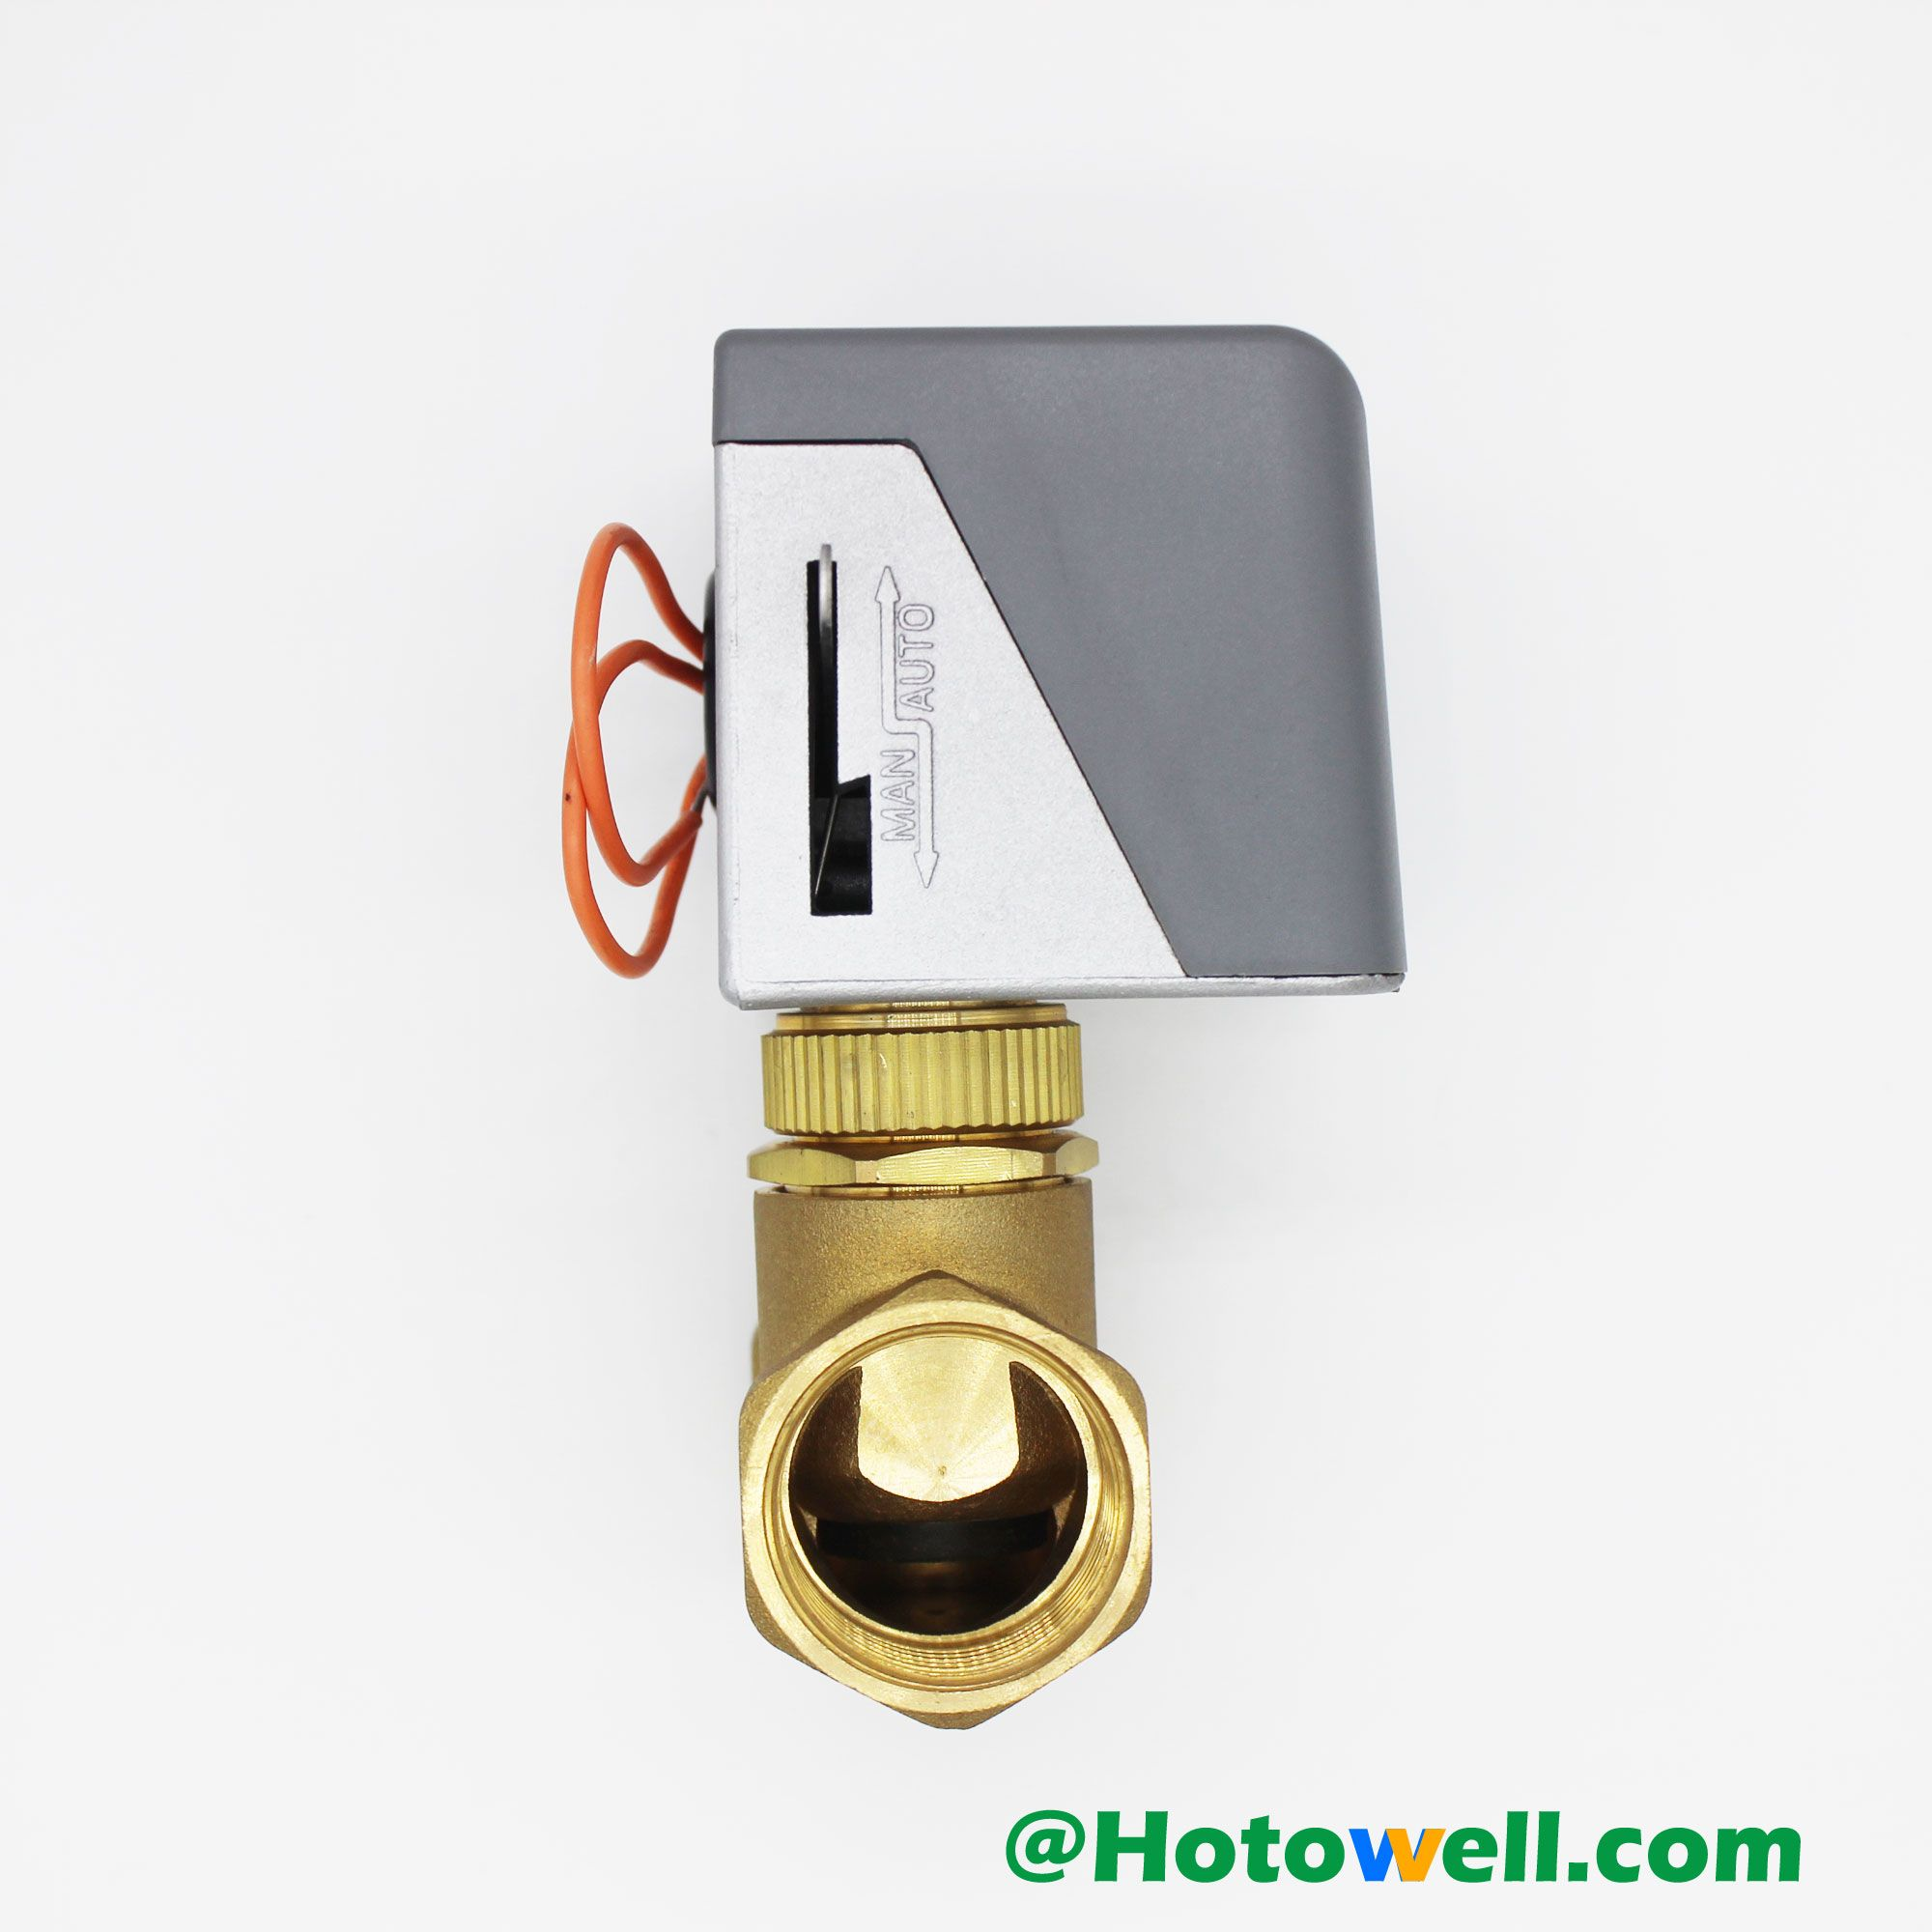 HTWV71 Series Motorized Valves are used to control the